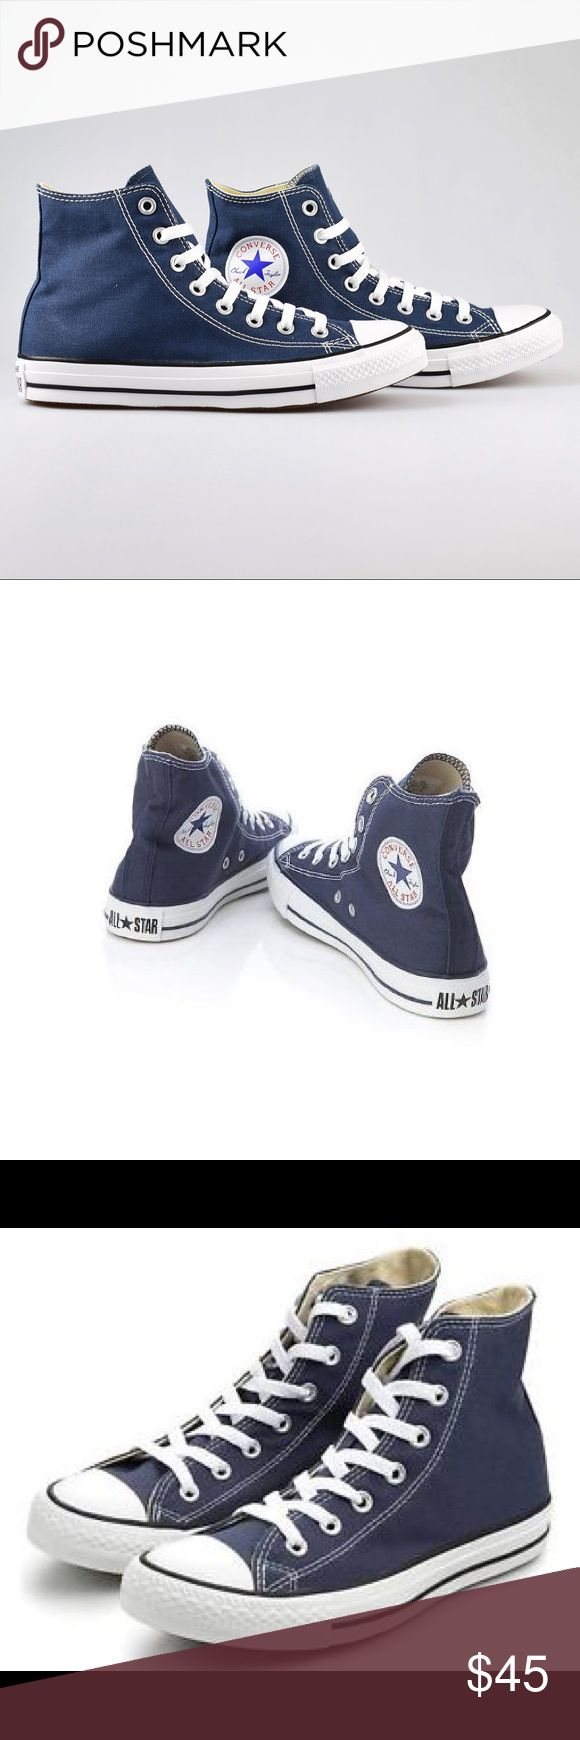 Converse Chuck Taylor women's 7.5 navy blue shoes Brand new Converse Shoes Sneakers